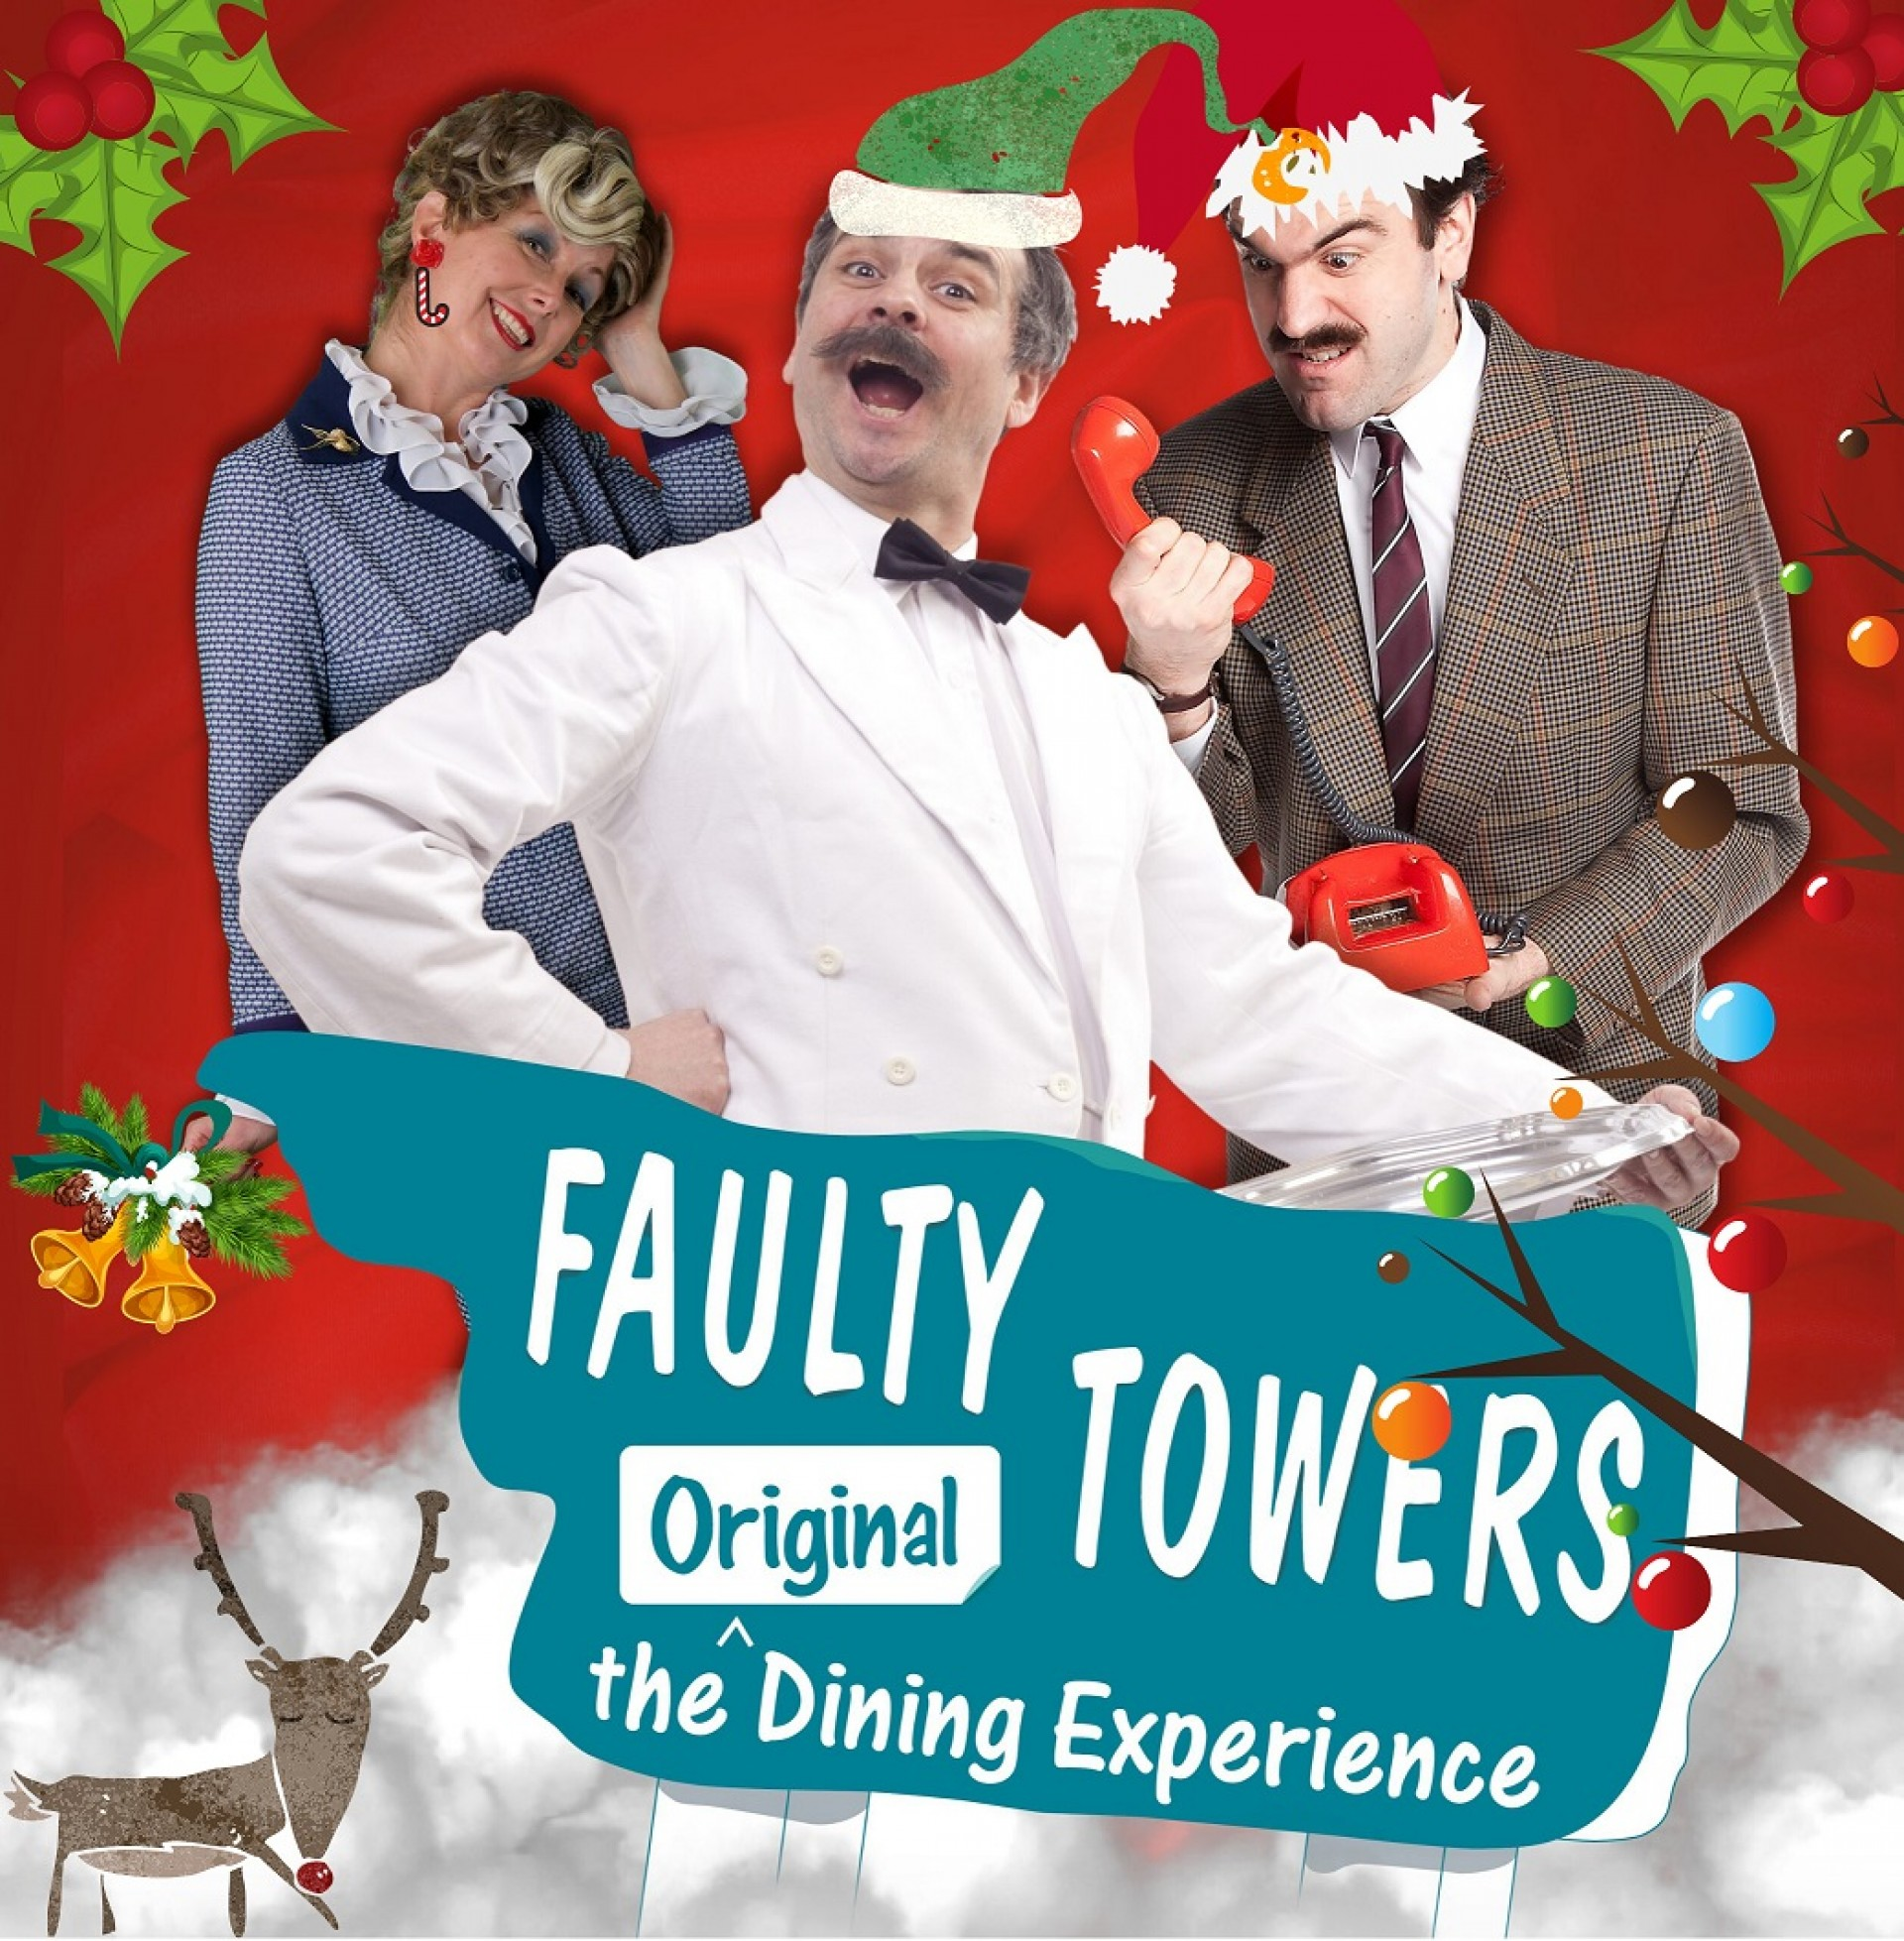 Midwinter Xmas Lunch at Farty Flowers Fawlty Towers!